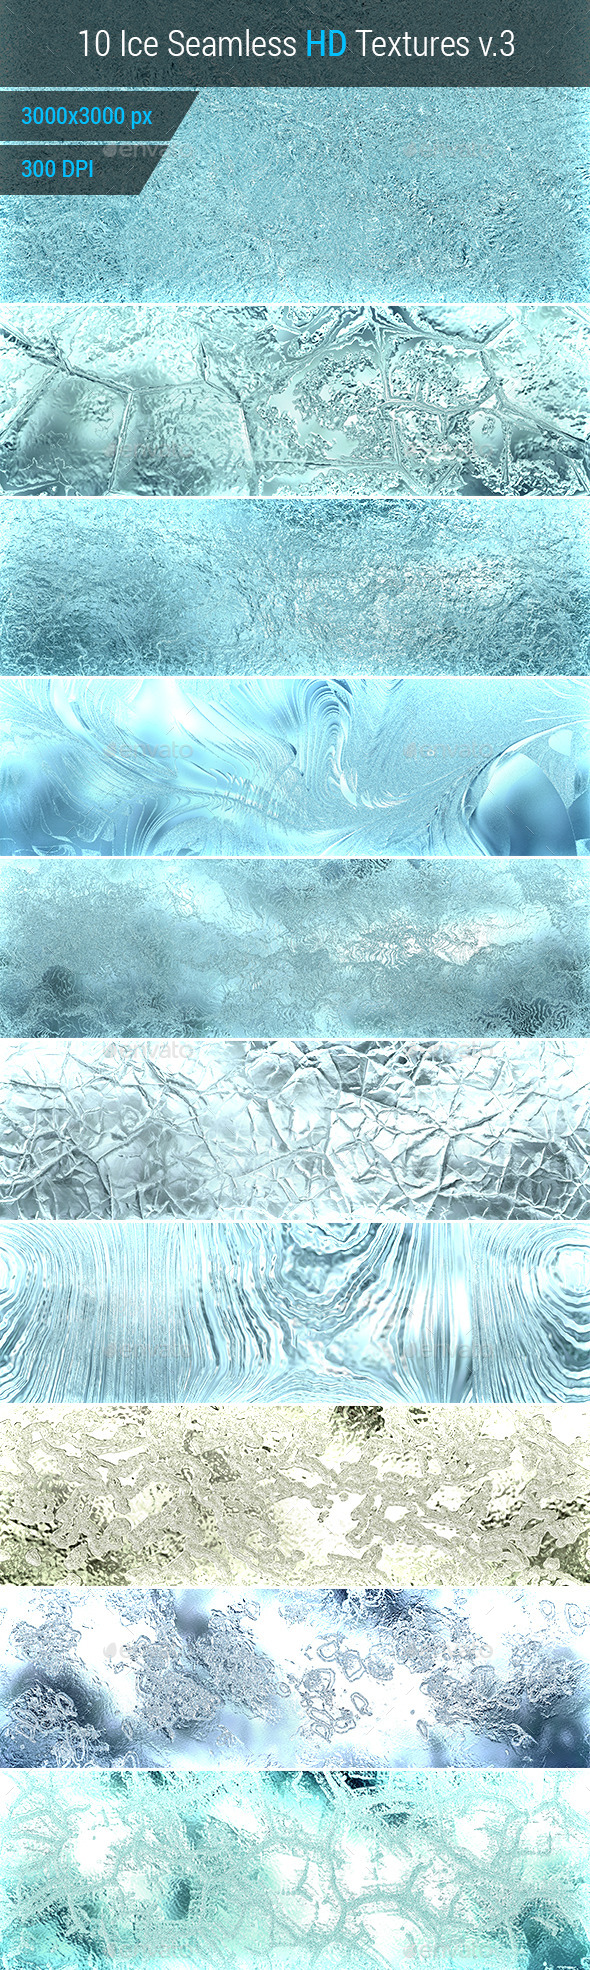 Ice Seamless and Tileable Background Texture v.3 - Nature Textures